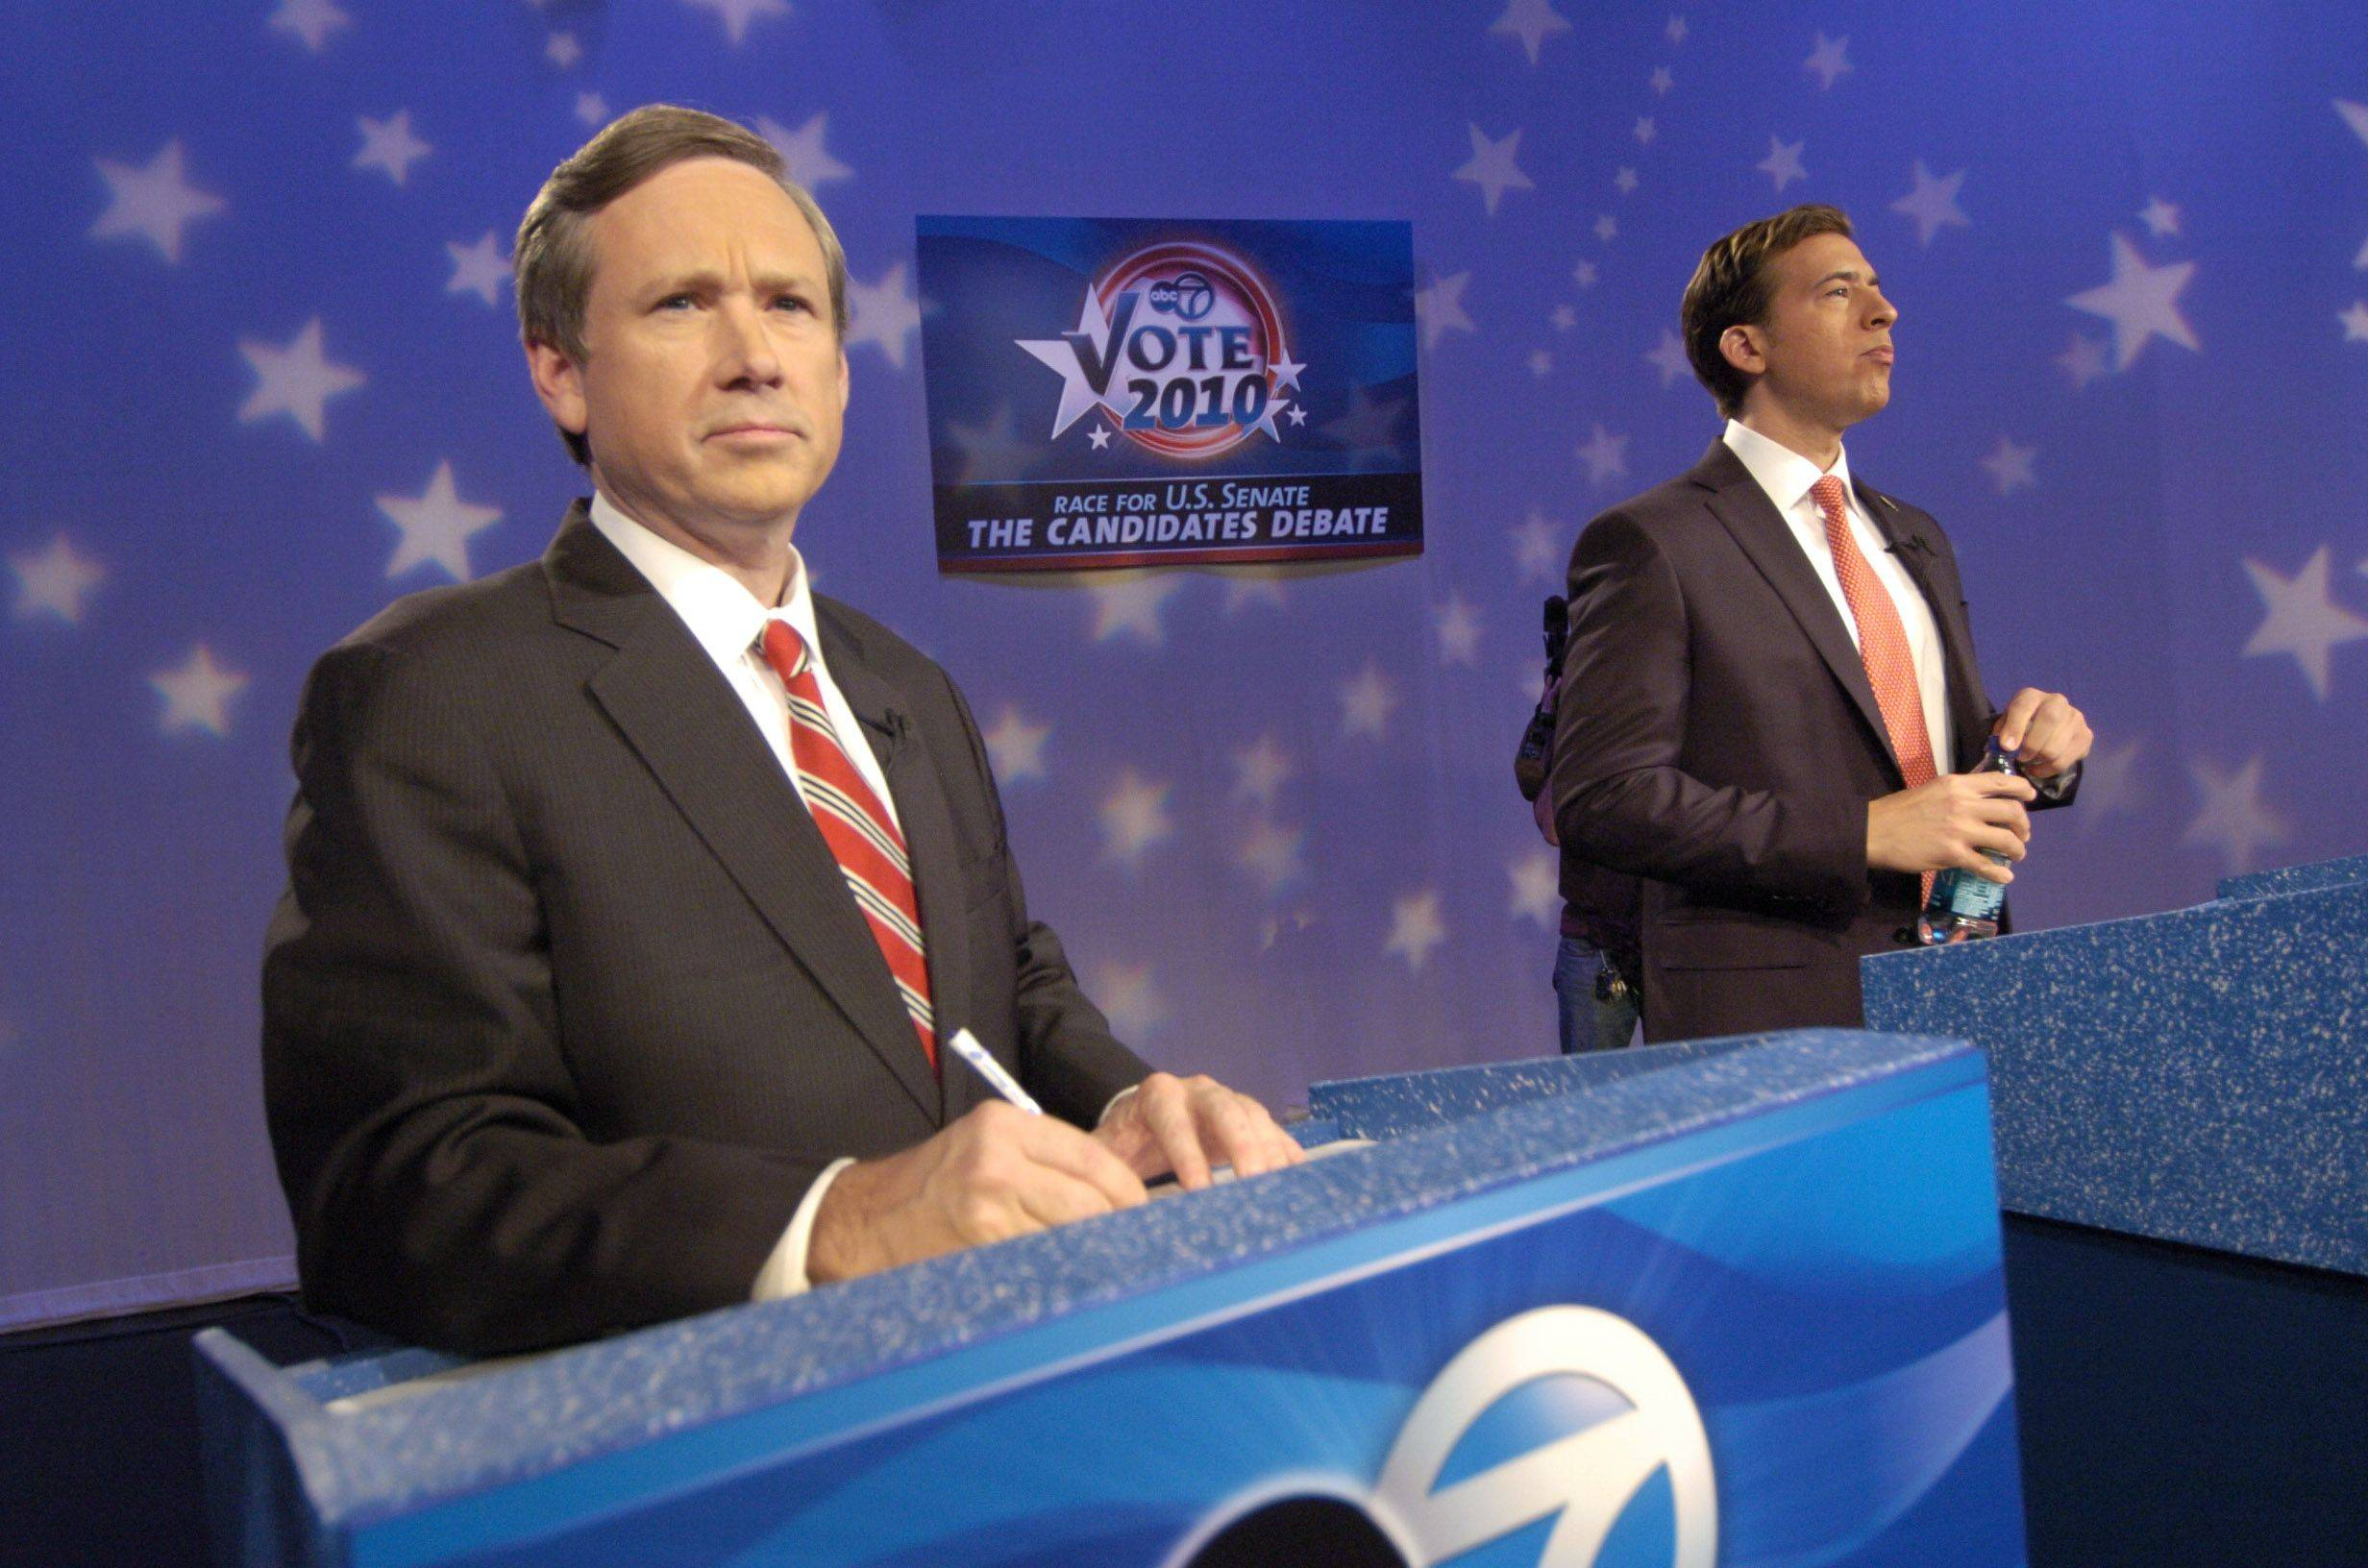 Republican Mark Kirk, left, and Democrat Alexi Giannoulias, candidates for the U.S. Senate, prepare for Tuesday evening's debate at the ABC 7 studio in Chicago.